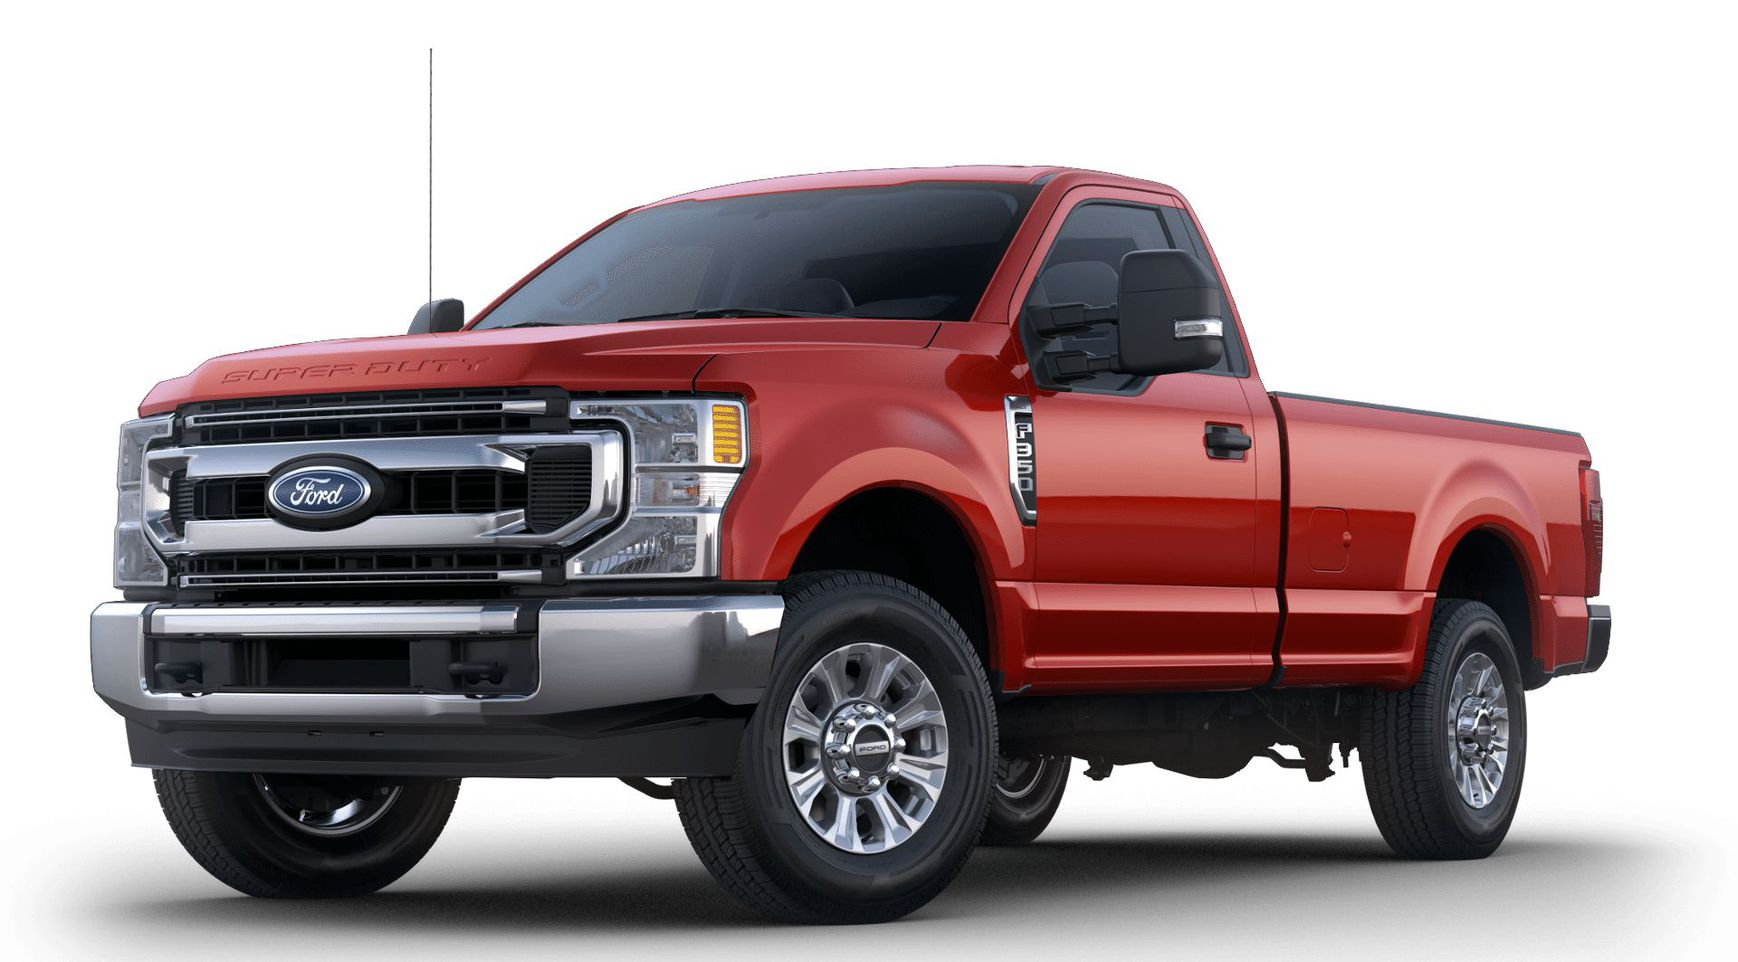 Ford F-350 2020 XLT 6.7 V8 OHV Power Stroke® Turbo Diesel Дизель 10 ст АКПП Полный